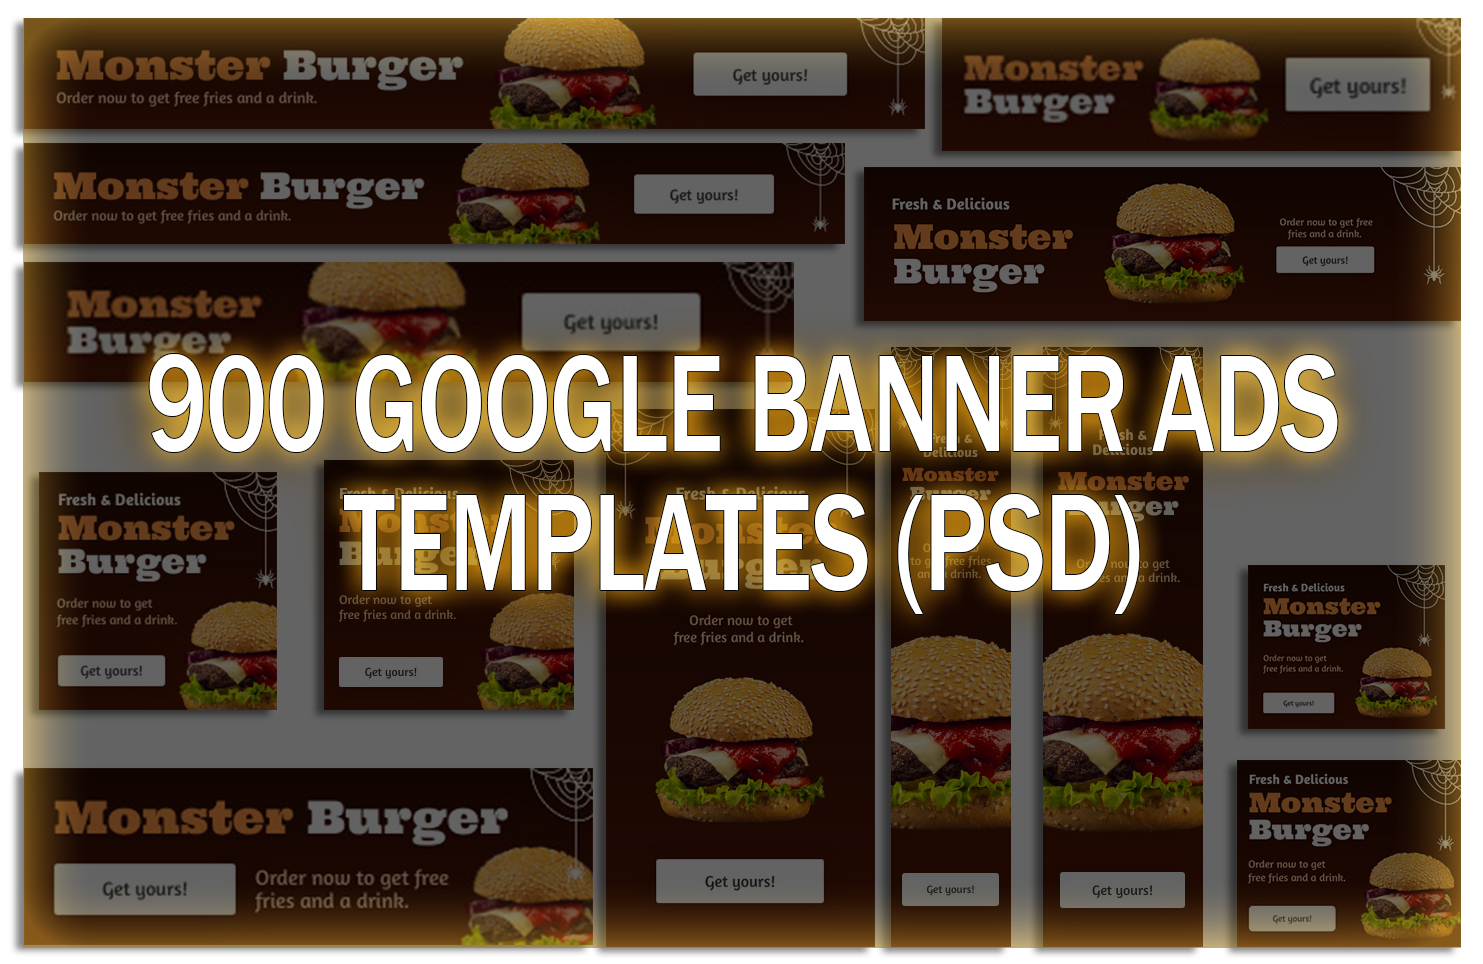 i will send You 900 google banner ads templates PSD